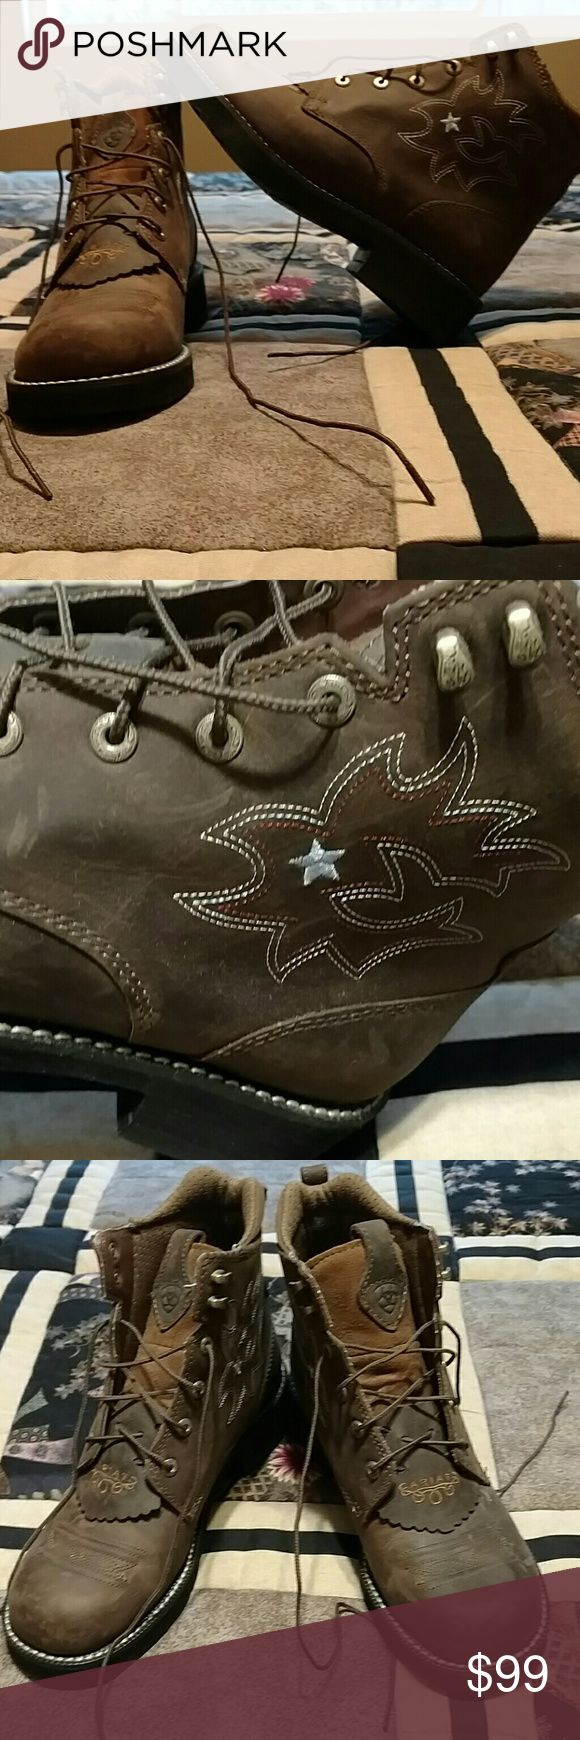 Ariat work boots NWOT. Saddle brown w/ cute stitching. Ariat Shoes Lace Up Boots